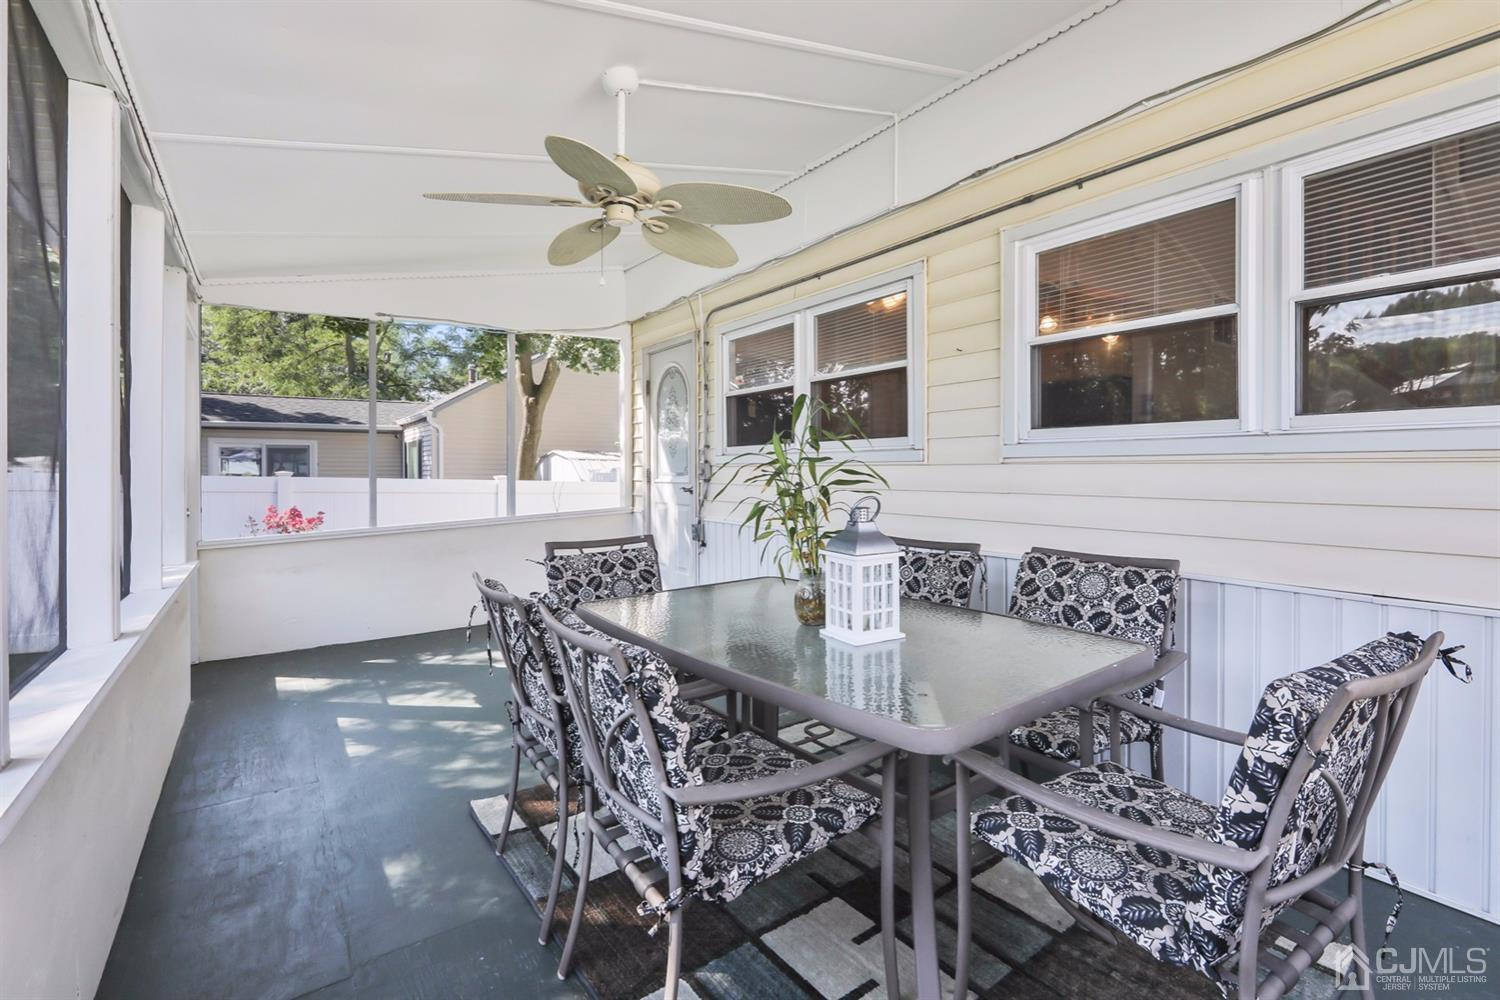 Another view of the Beautiful, enclosed porch